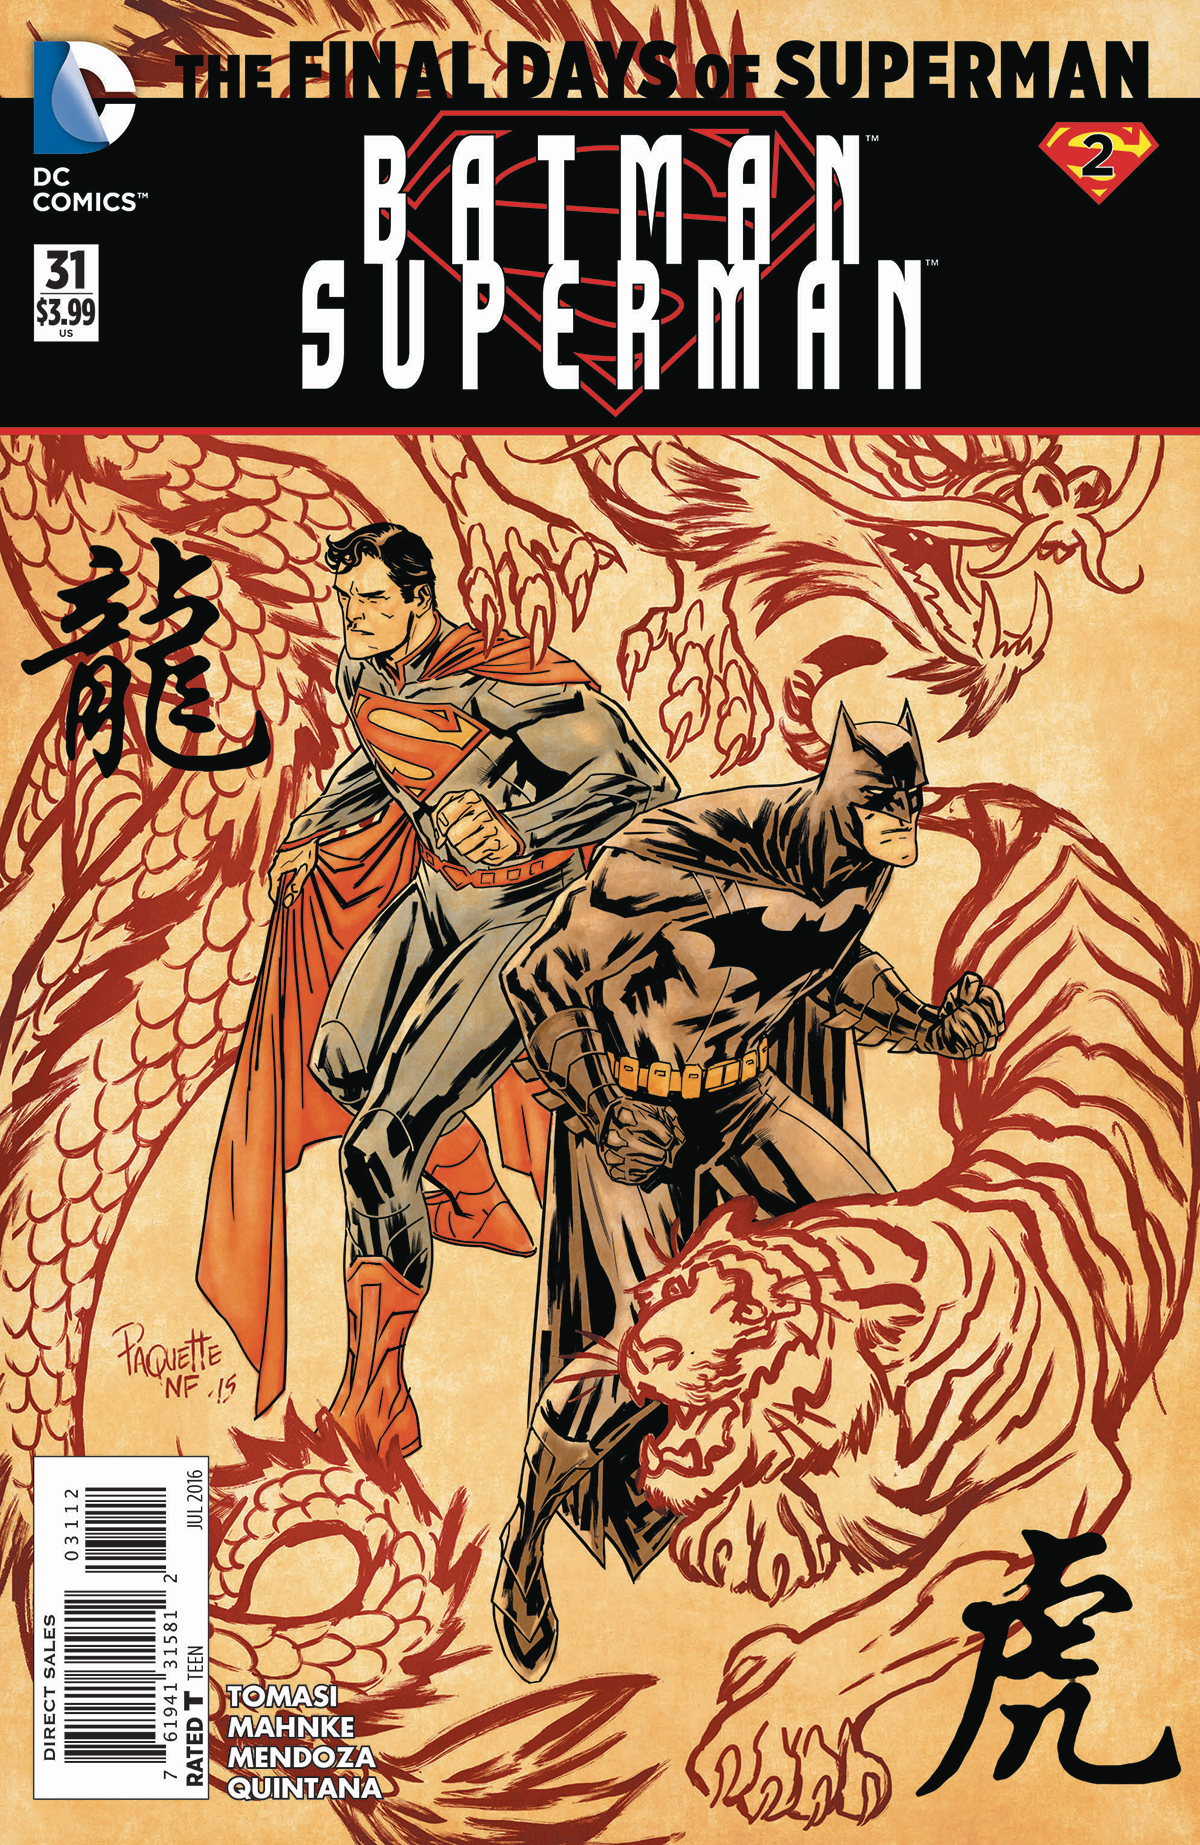 BATMAN SUPERMAN #31 2ND PTG (FINAL DAYS)